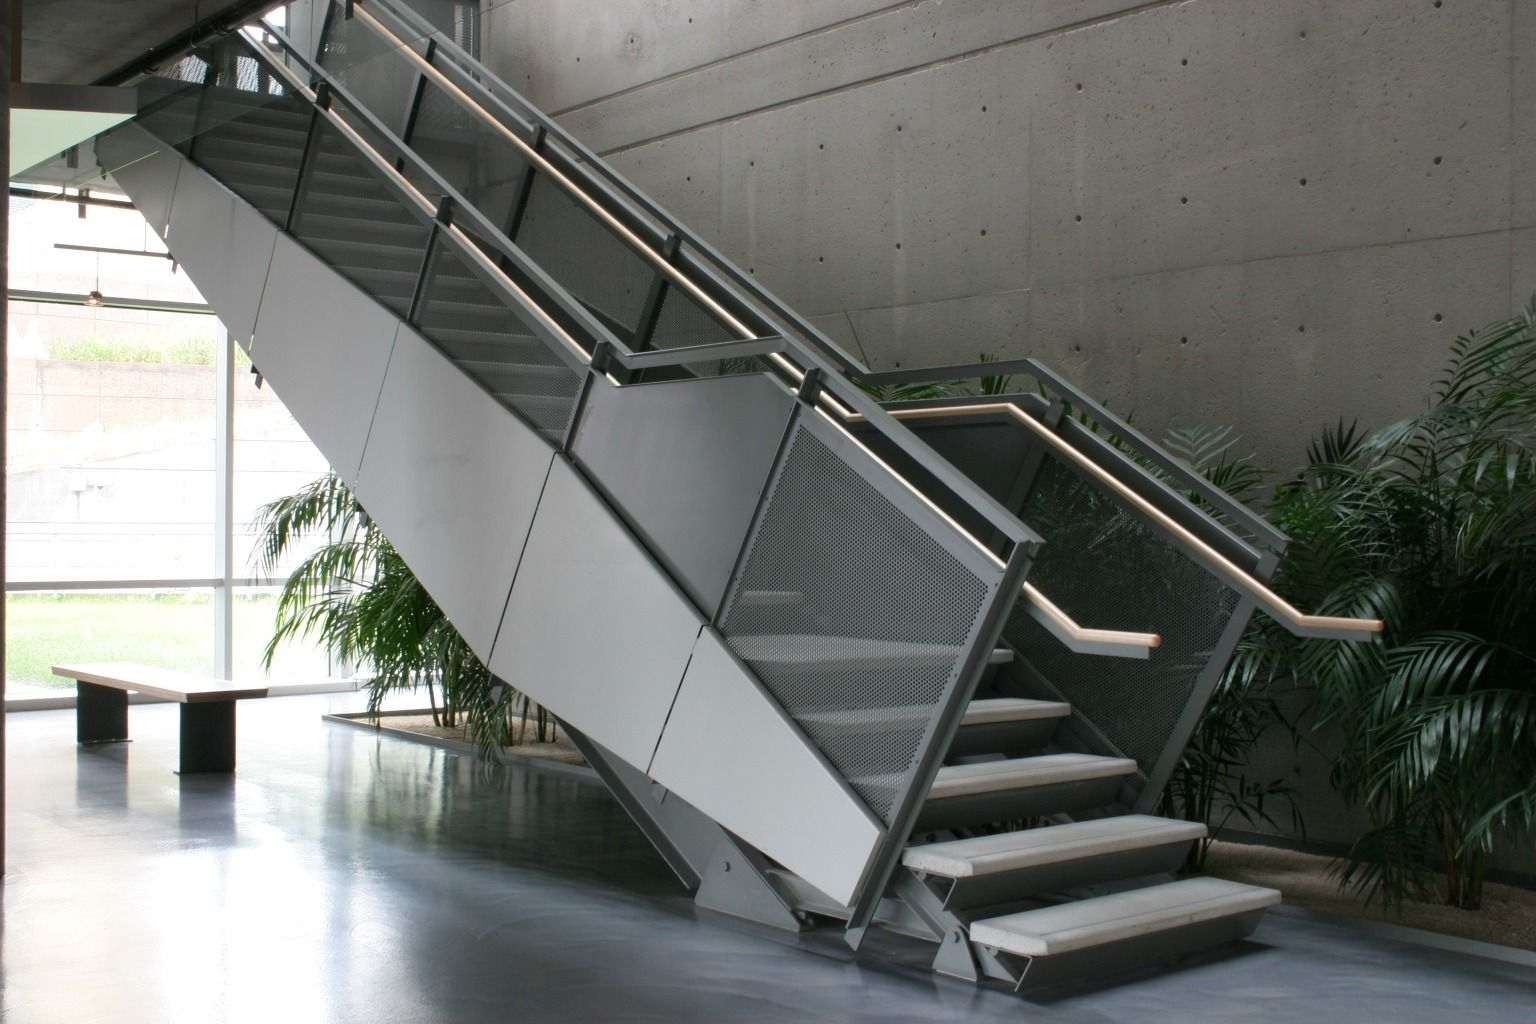 Superb Metal Pan Stairs Stairs Pinterest Metal Stairs Stair Railing And Steel Stairs Design